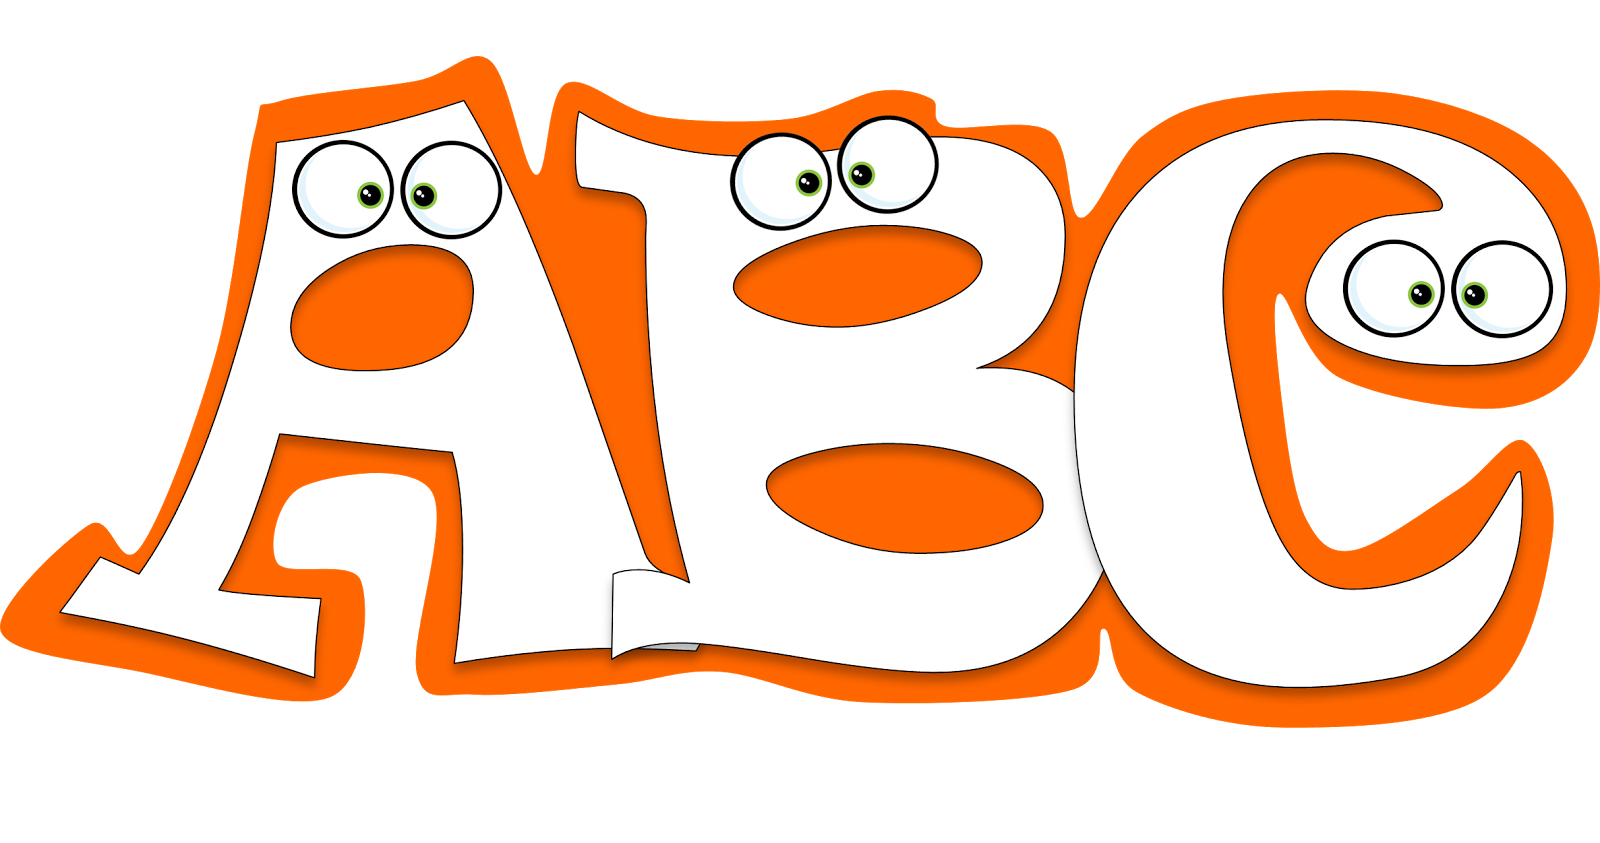 Abc 123 clipart free image free download Abc clipart free - ClipartFest image free download